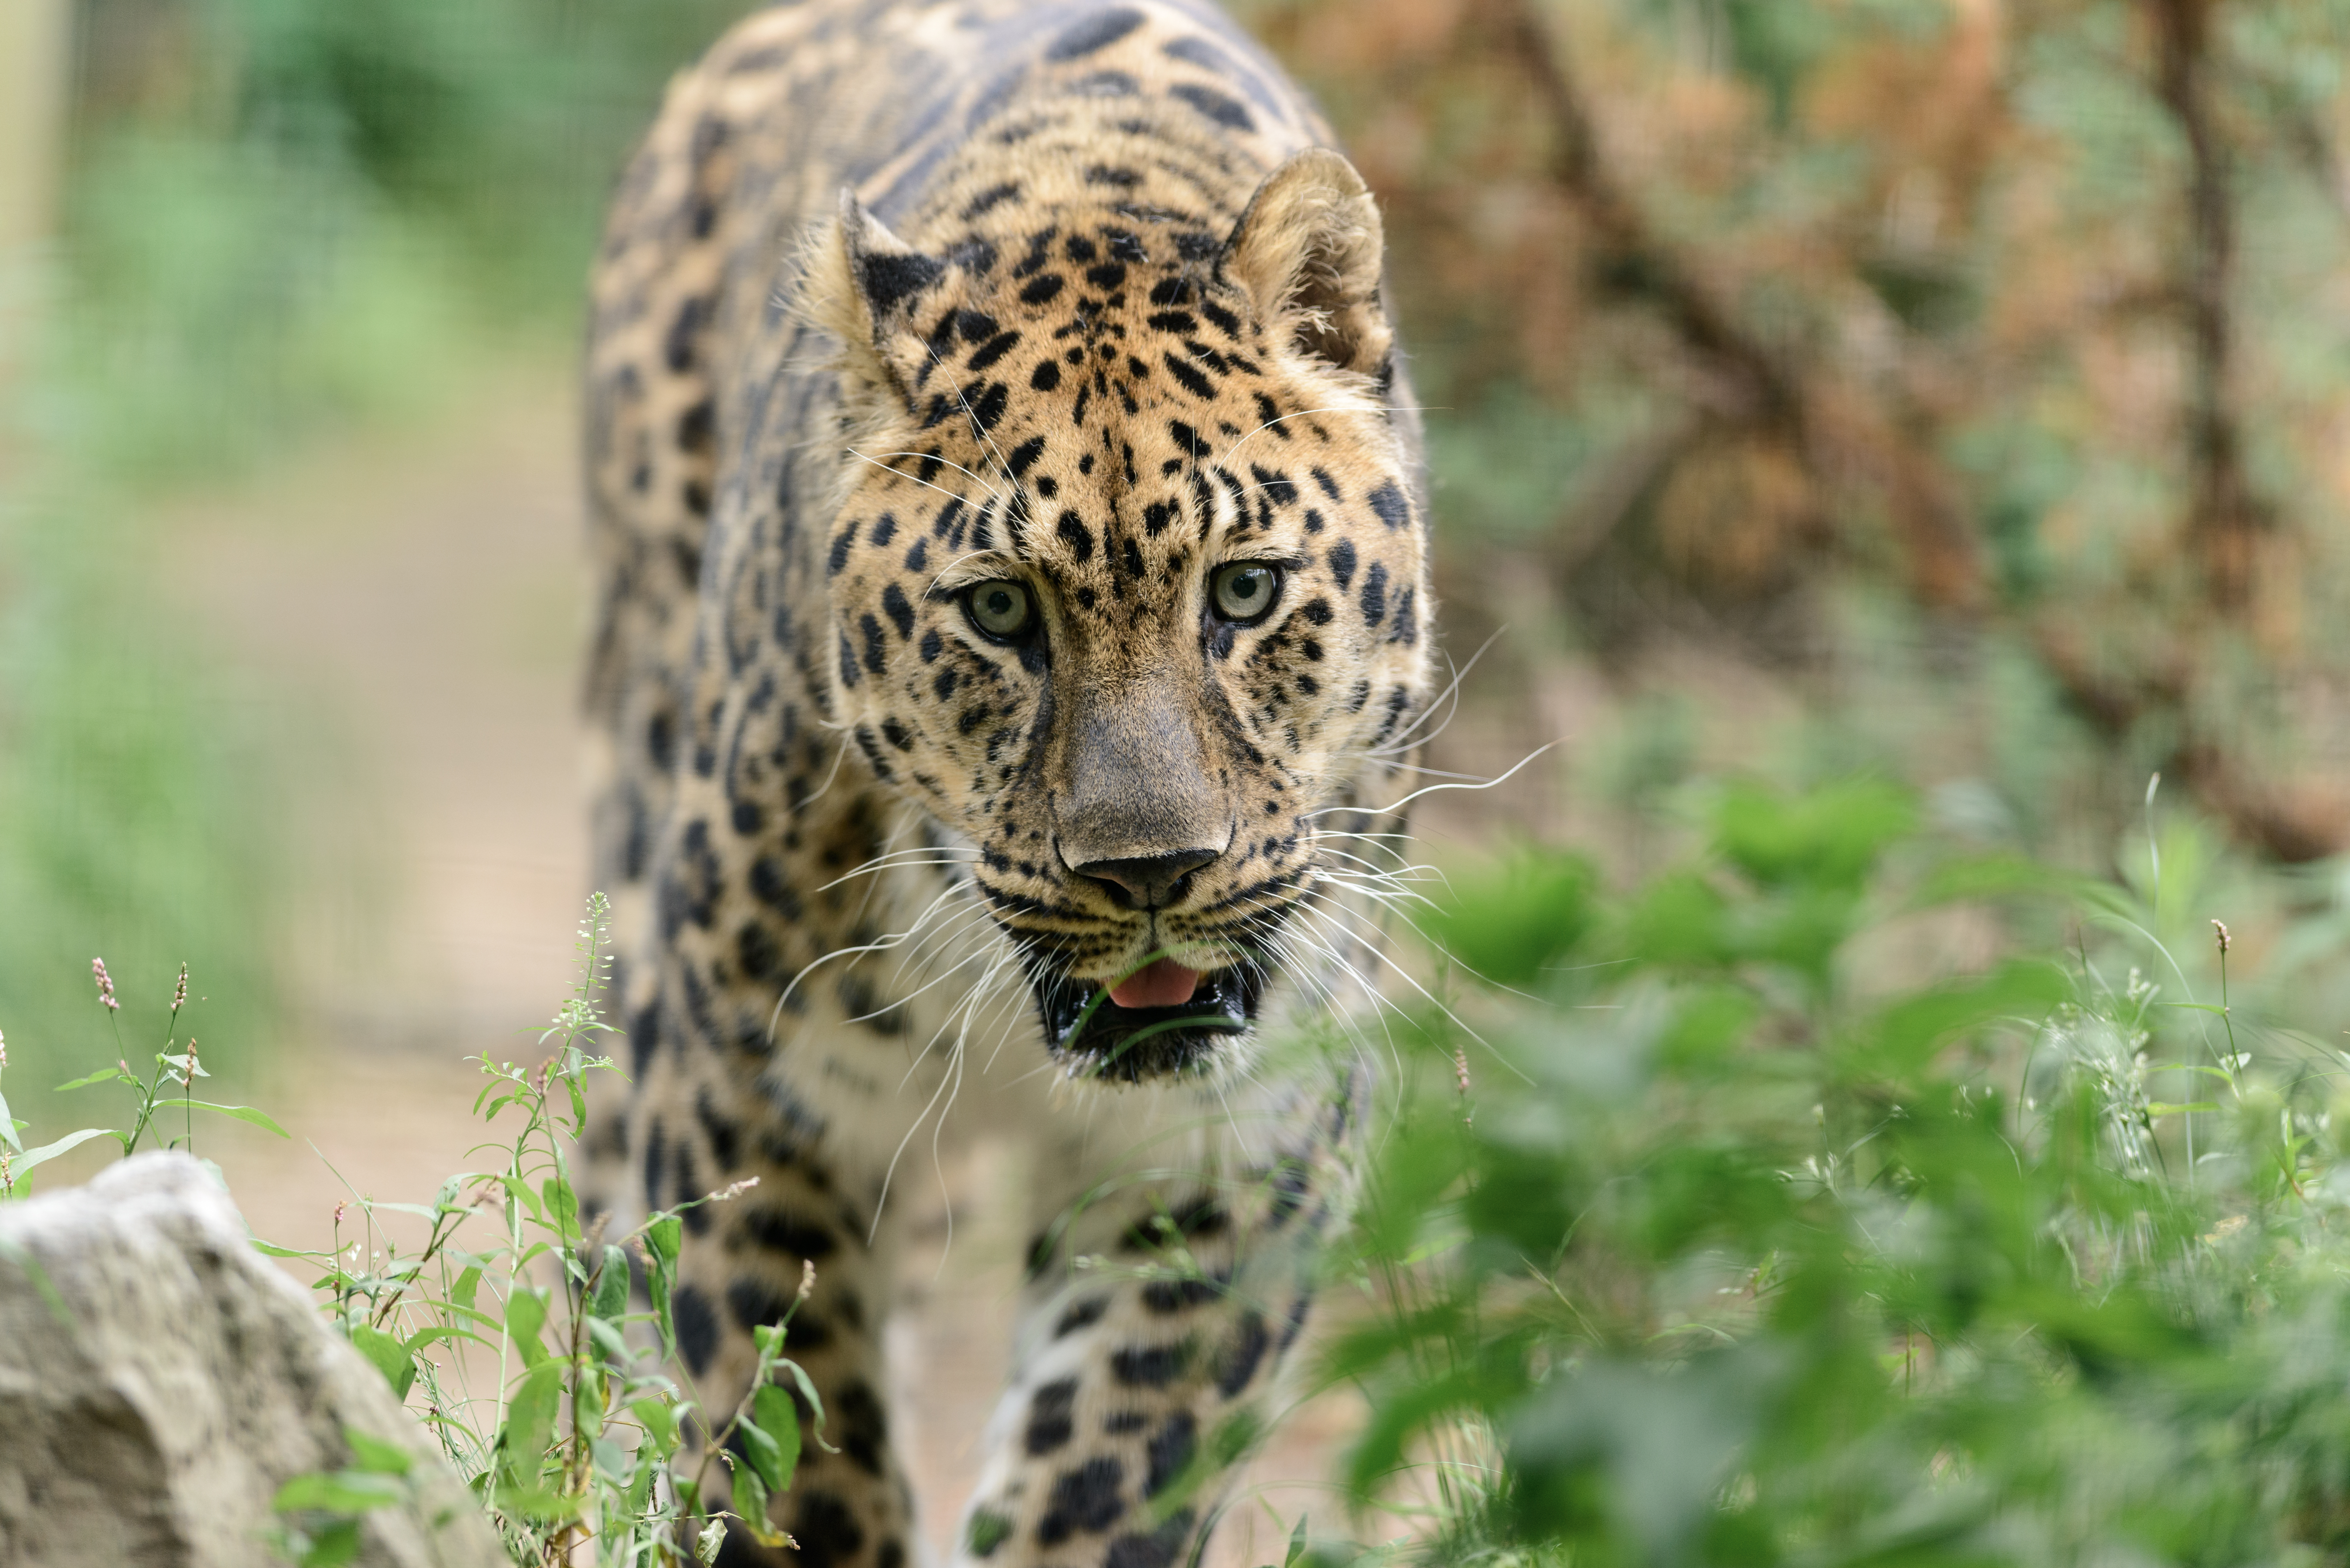 136293 download wallpaper Animals, Leopard, Big Cat, Predator, Stroll screensavers and pictures for free